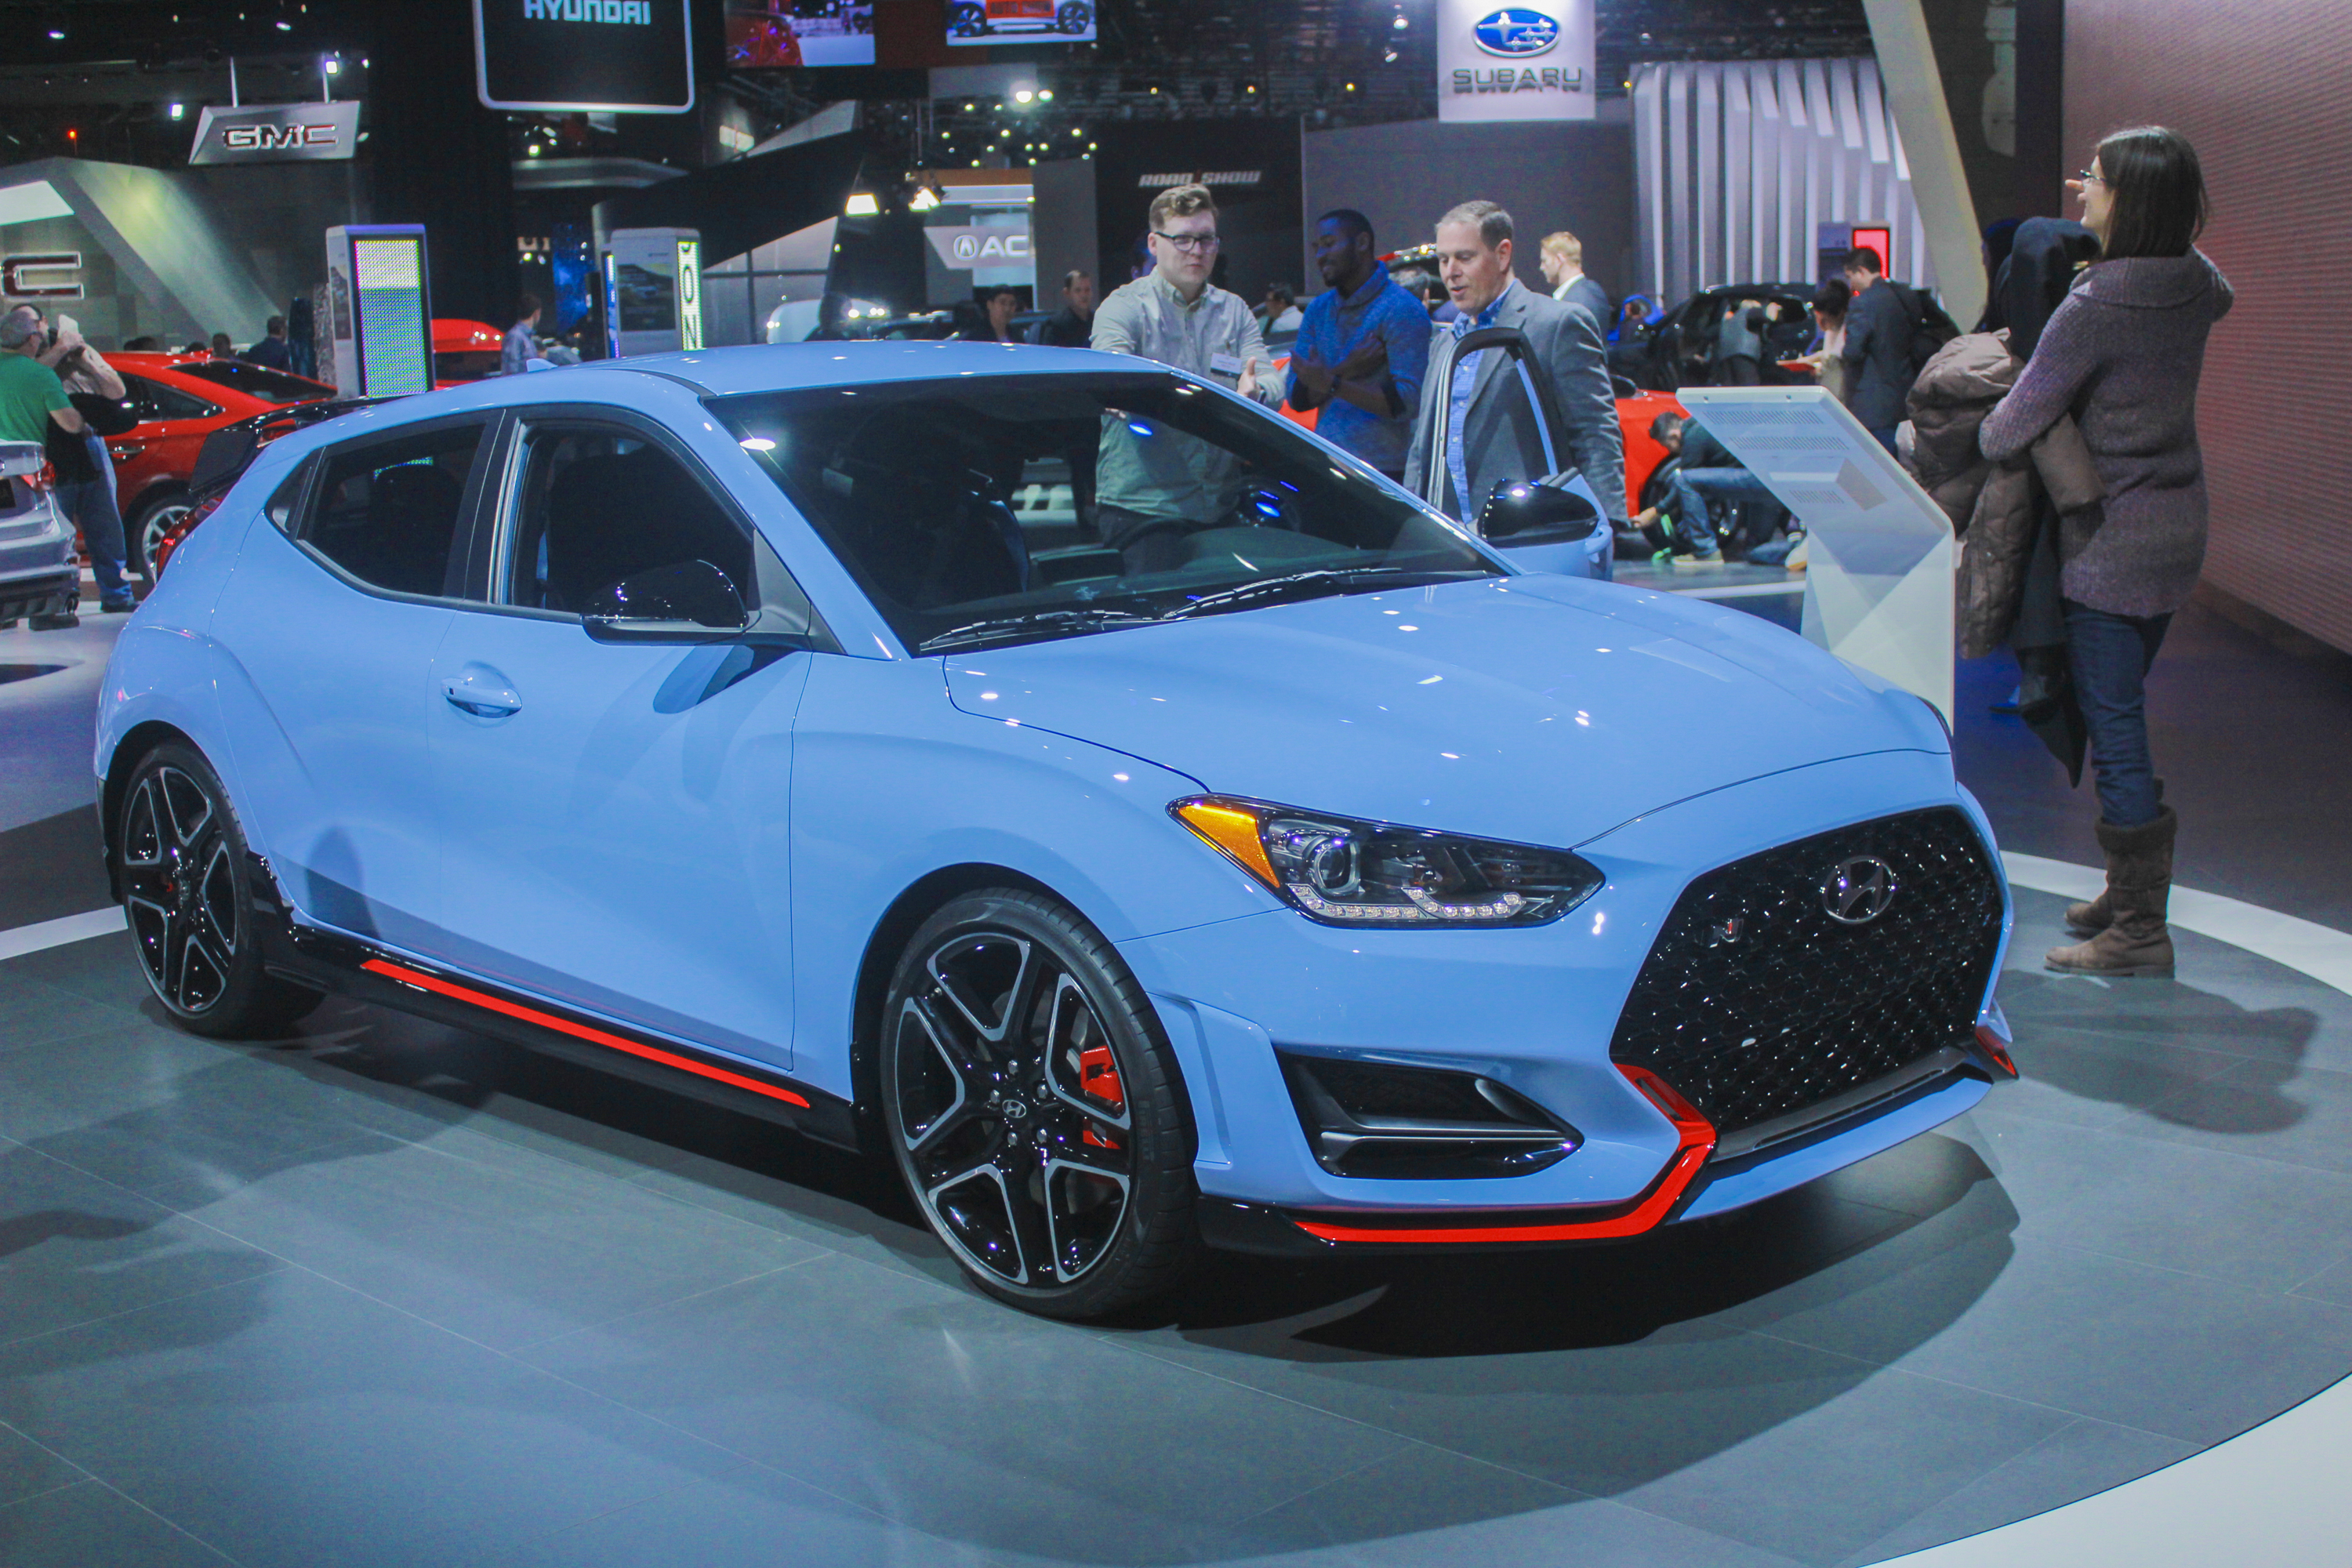 2019 hyundai veloster n review gallery top speed. Black Bedroom Furniture Sets. Home Design Ideas